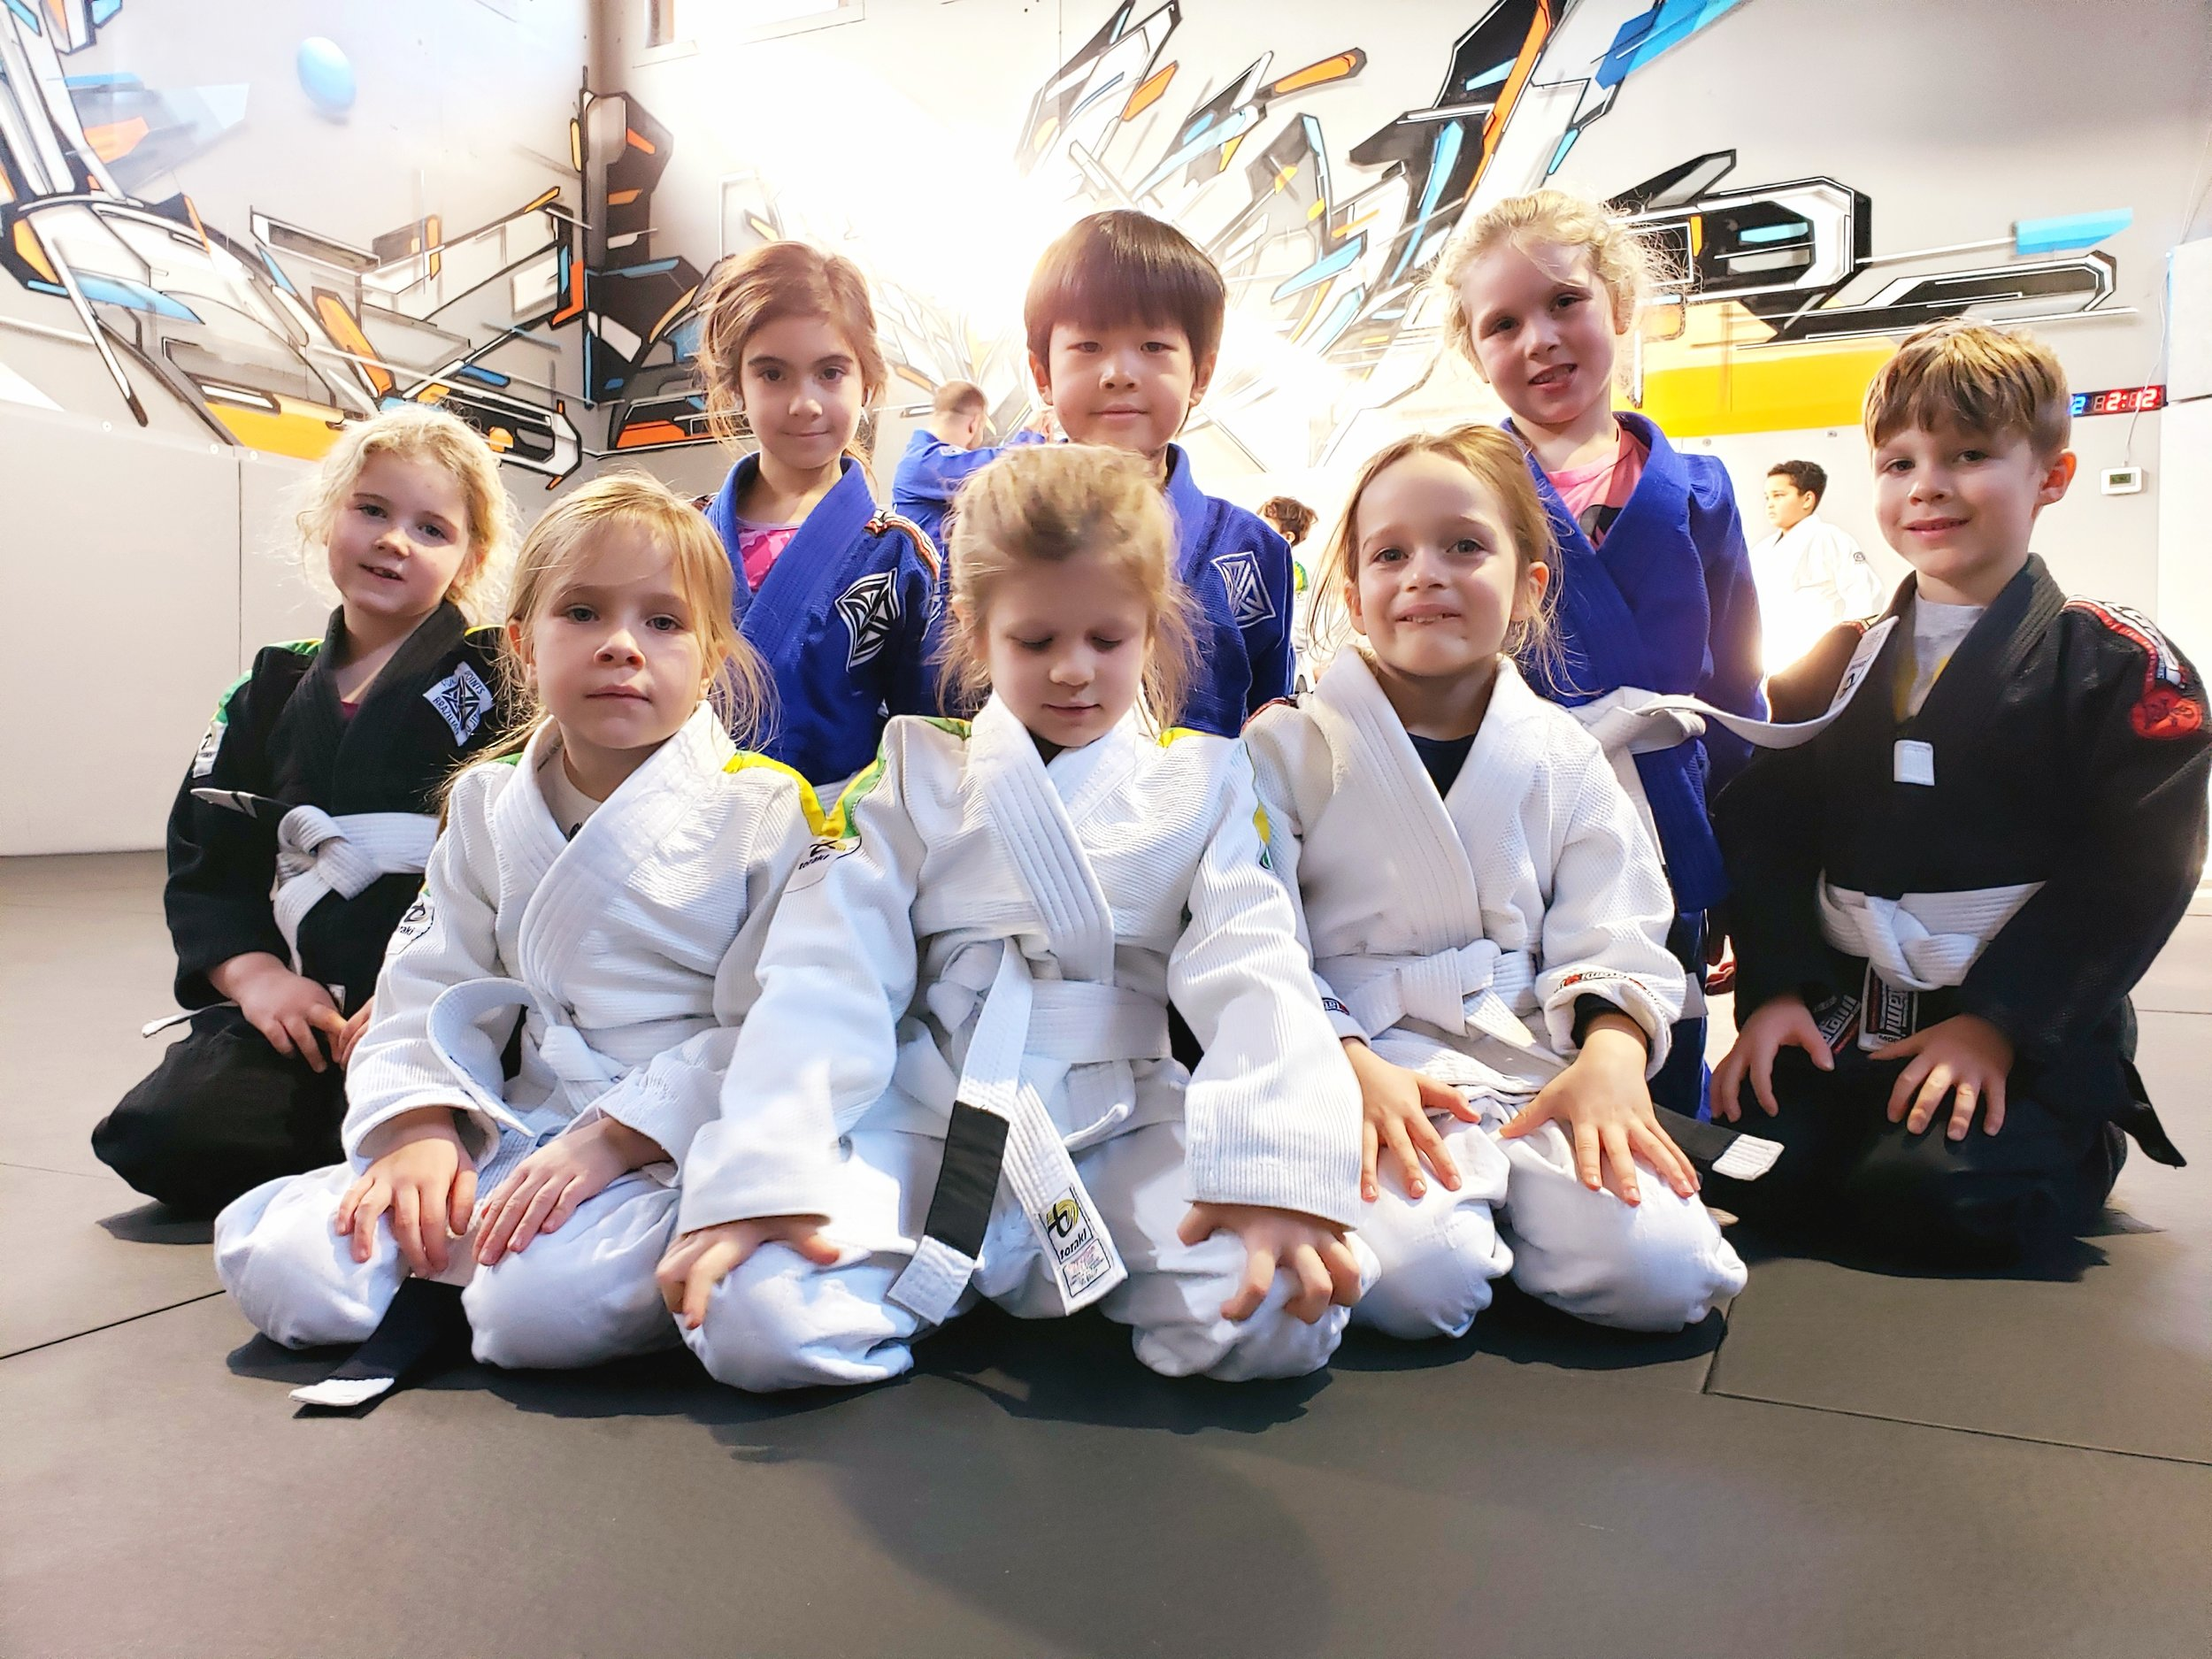 kids-team-bjj-martialarts-class